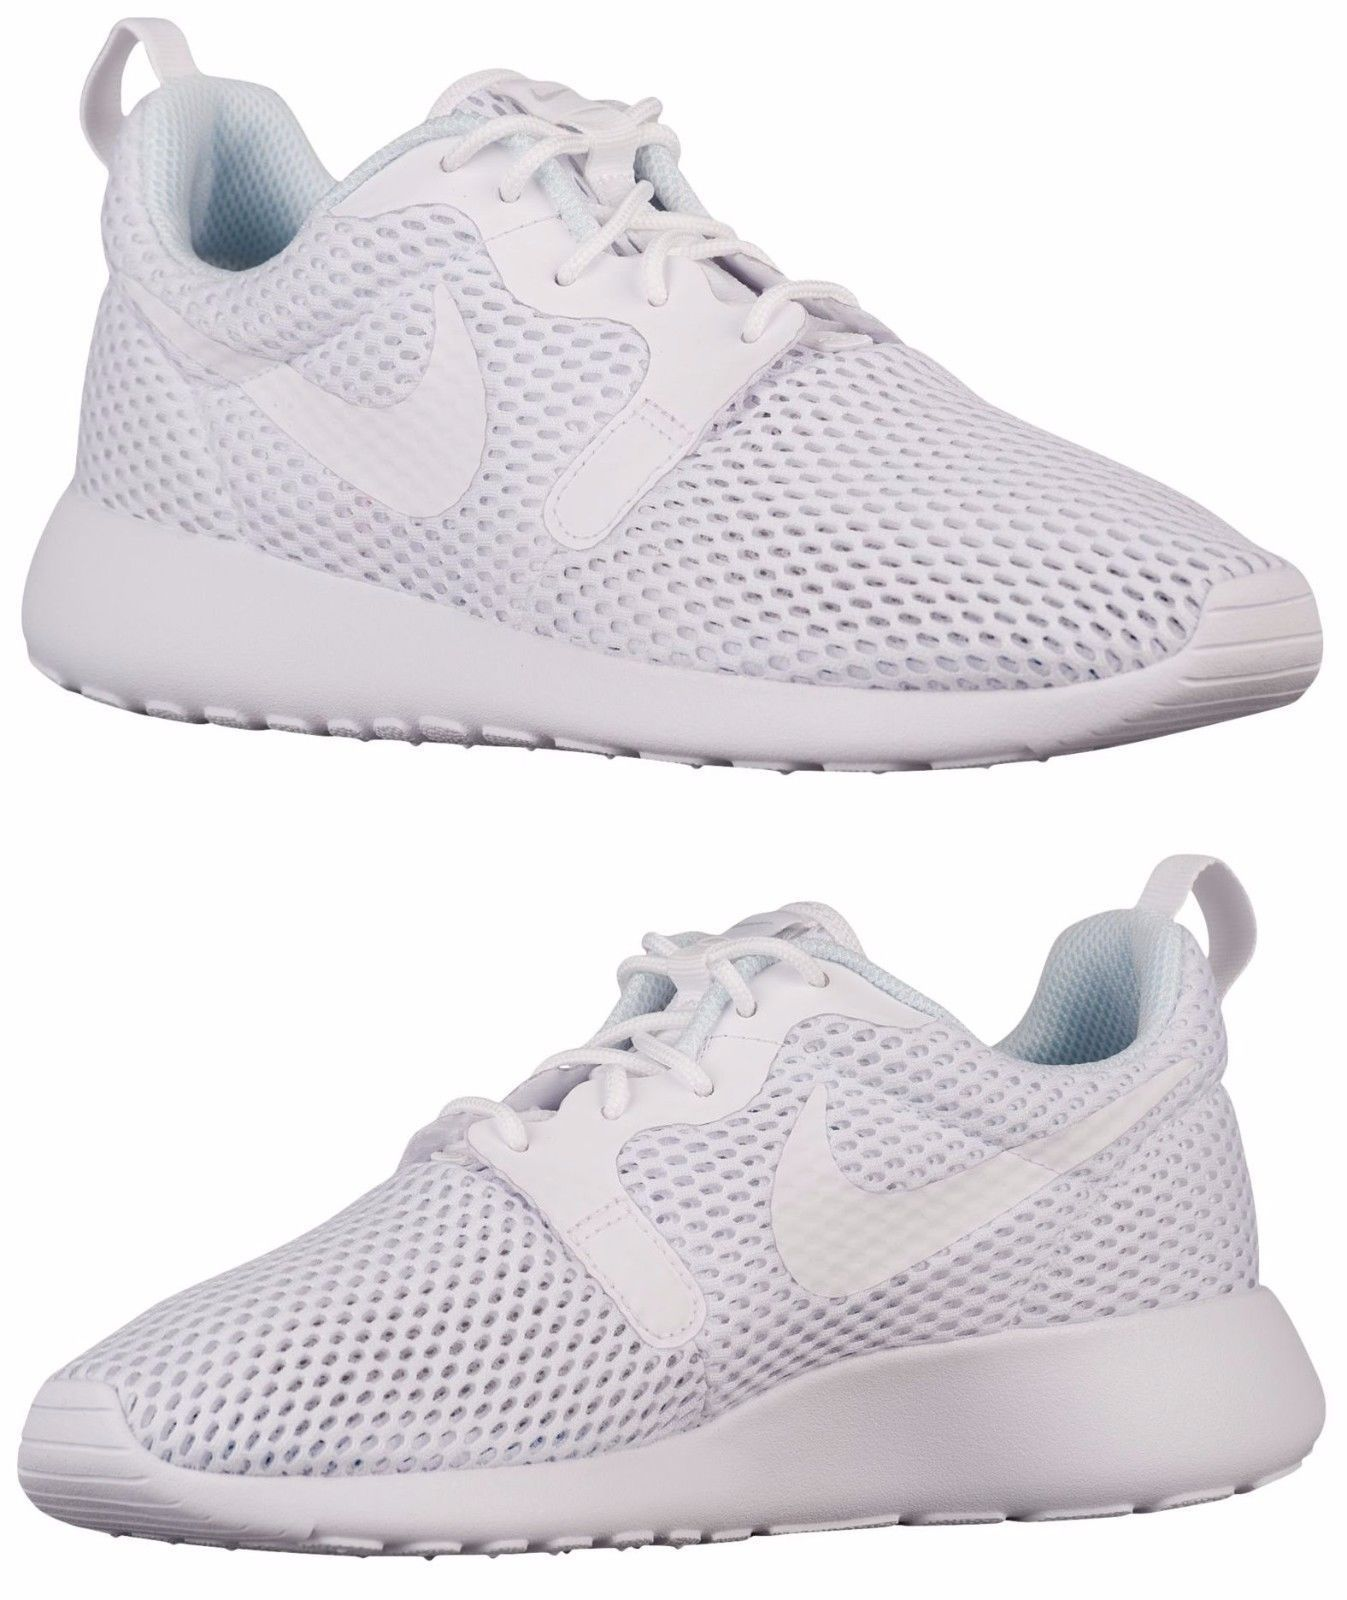 quality design 79d50 a0ab7 Nike Roshe One Hyper Casual Women S M Mesh White - Pure Platinum Authentic